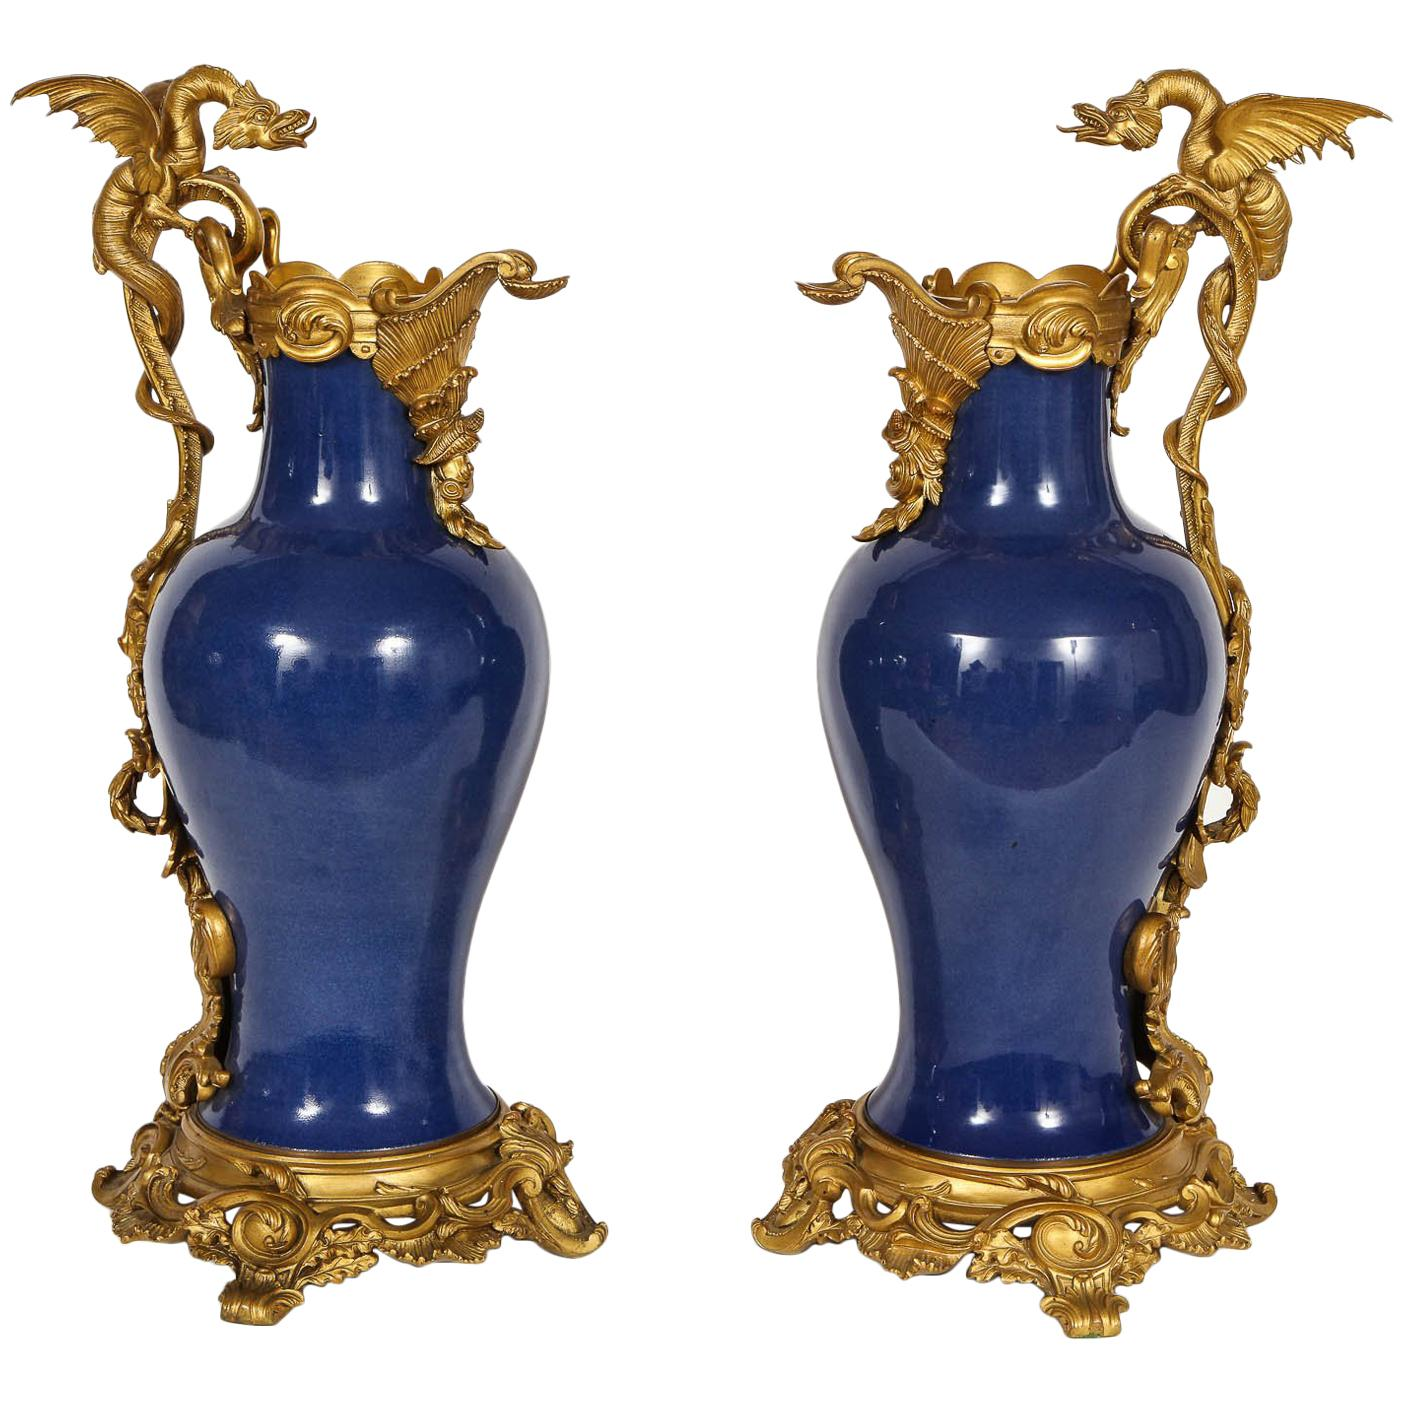 """Pair of French """"Bleu Pudre"""" Chinese Export Porcelain Ormolu-Mounted Vases"""